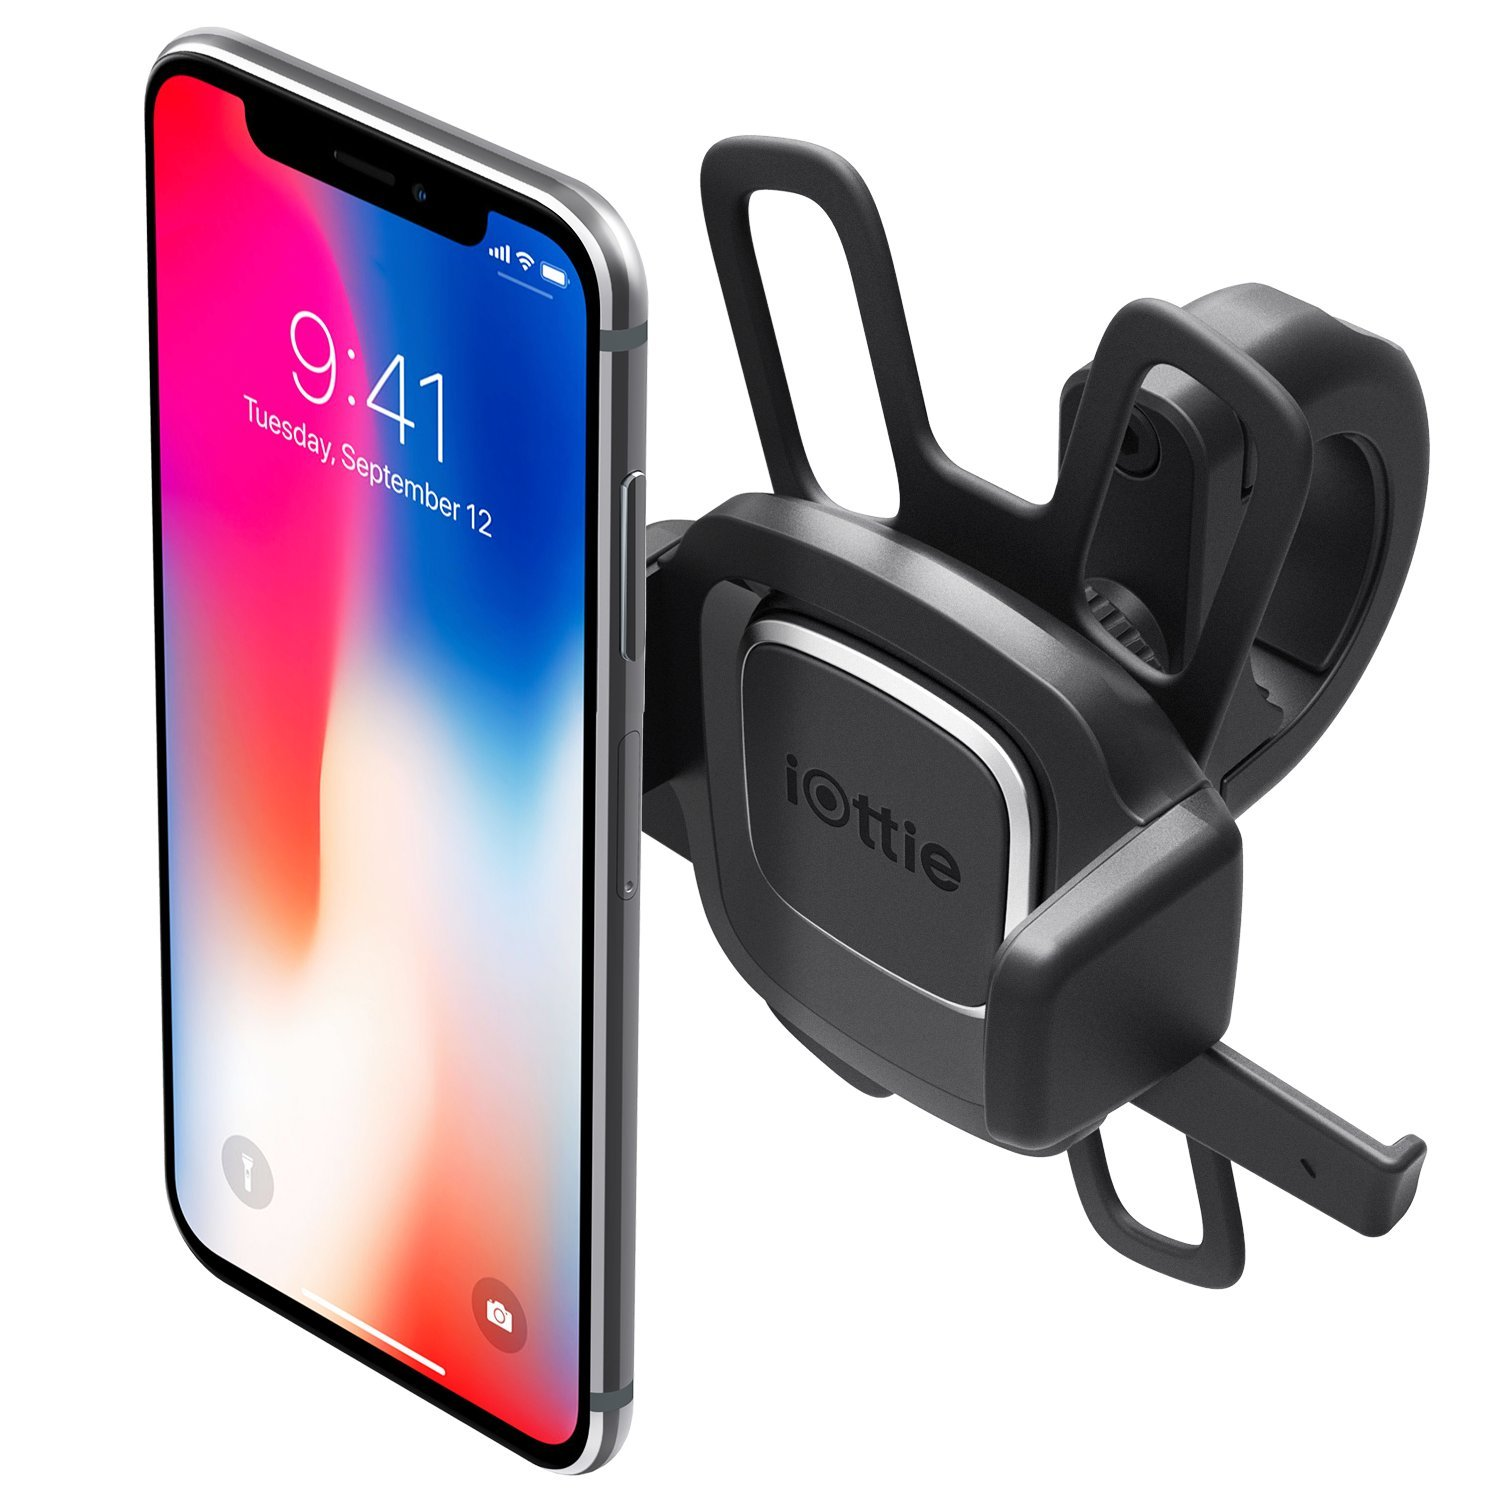 iOttie Easy One Touch 4 Bike Phone Mount & Holder, Motorcycle & Handlebar Cradle for iPhone X 8 Plus 7 6s SE Samsung Galaxy S9 S8 Edge S7 Note 8 & other Smartphone, Rubber Strap for Universal grip